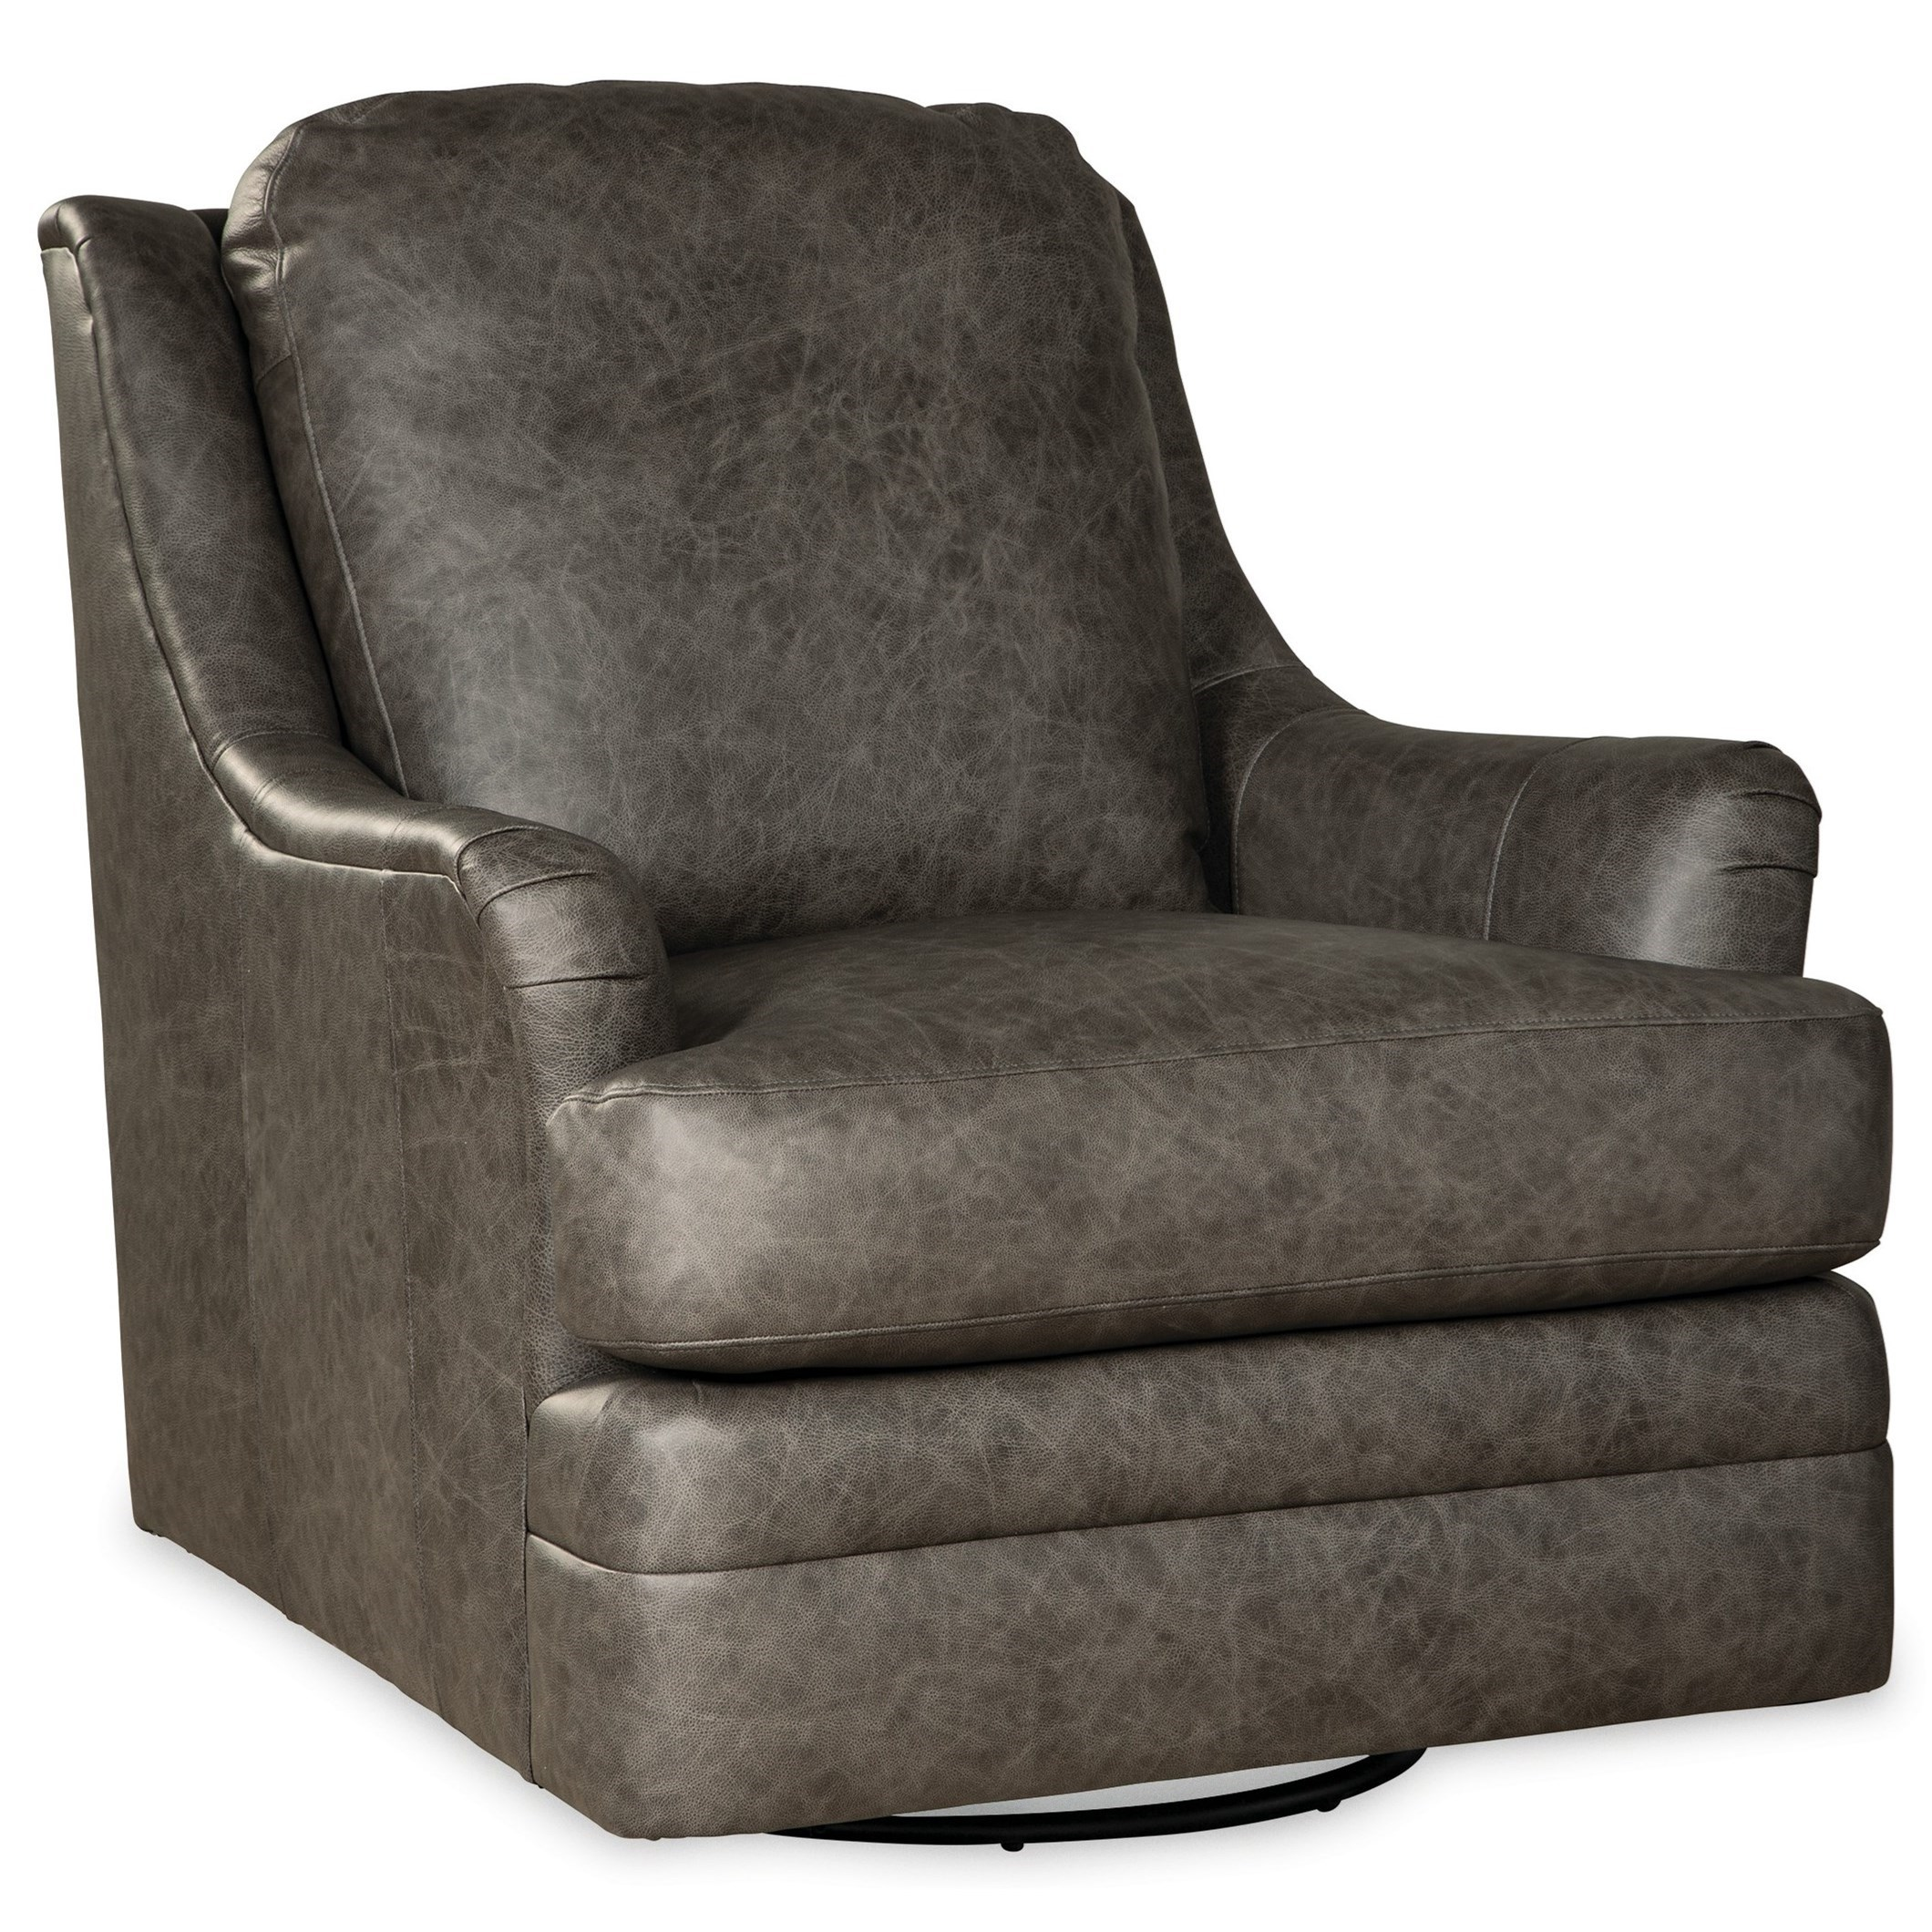 L084410 Swivel Chair by Craftmaster at Baer's Furniture